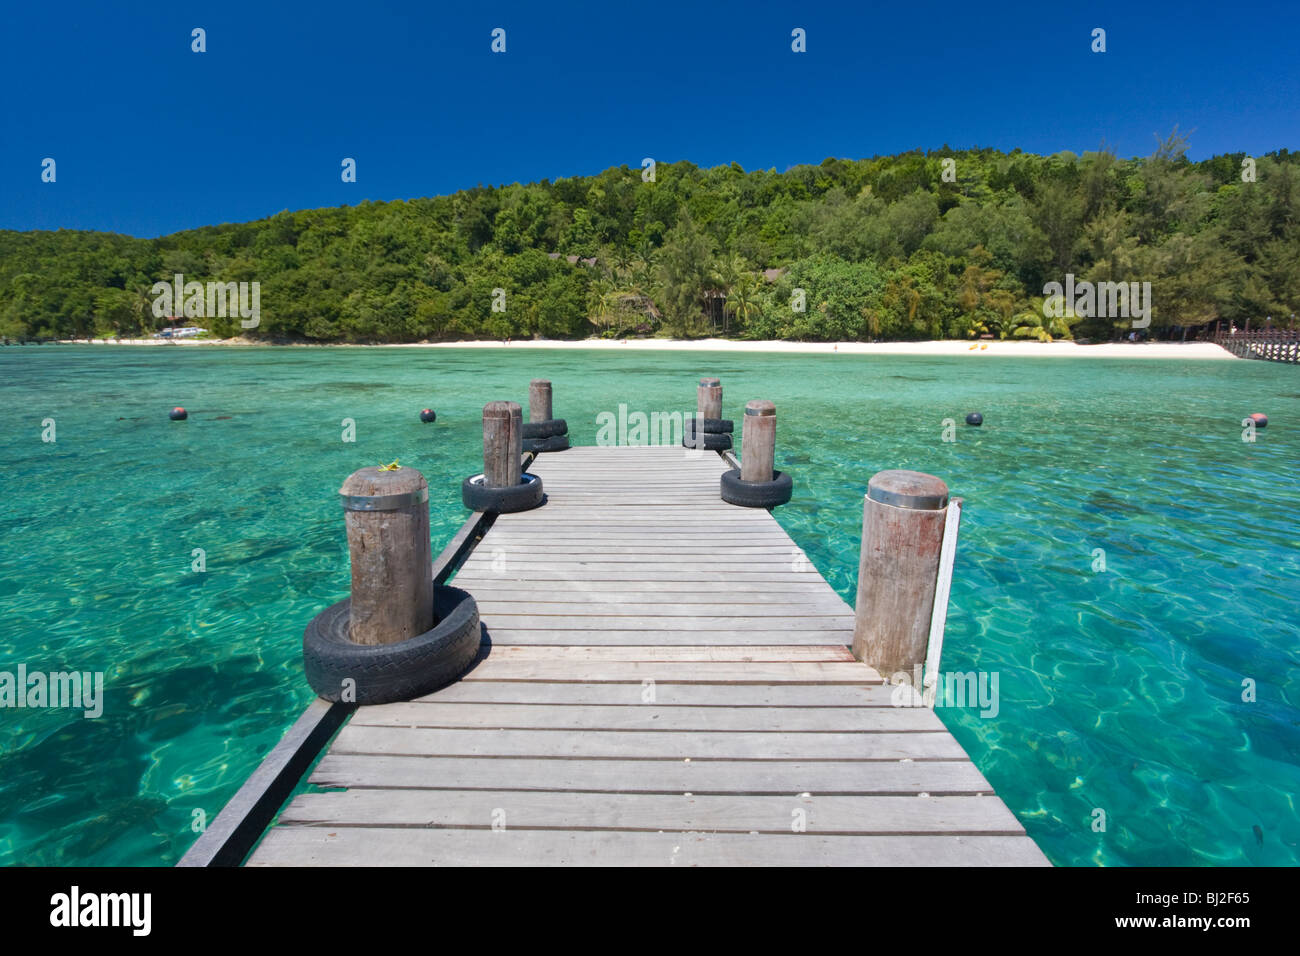 jetty on Manukan island in Sabah Borneo Malaysia with its turquoise water, green vegetation and white sand beaches - Stock Image